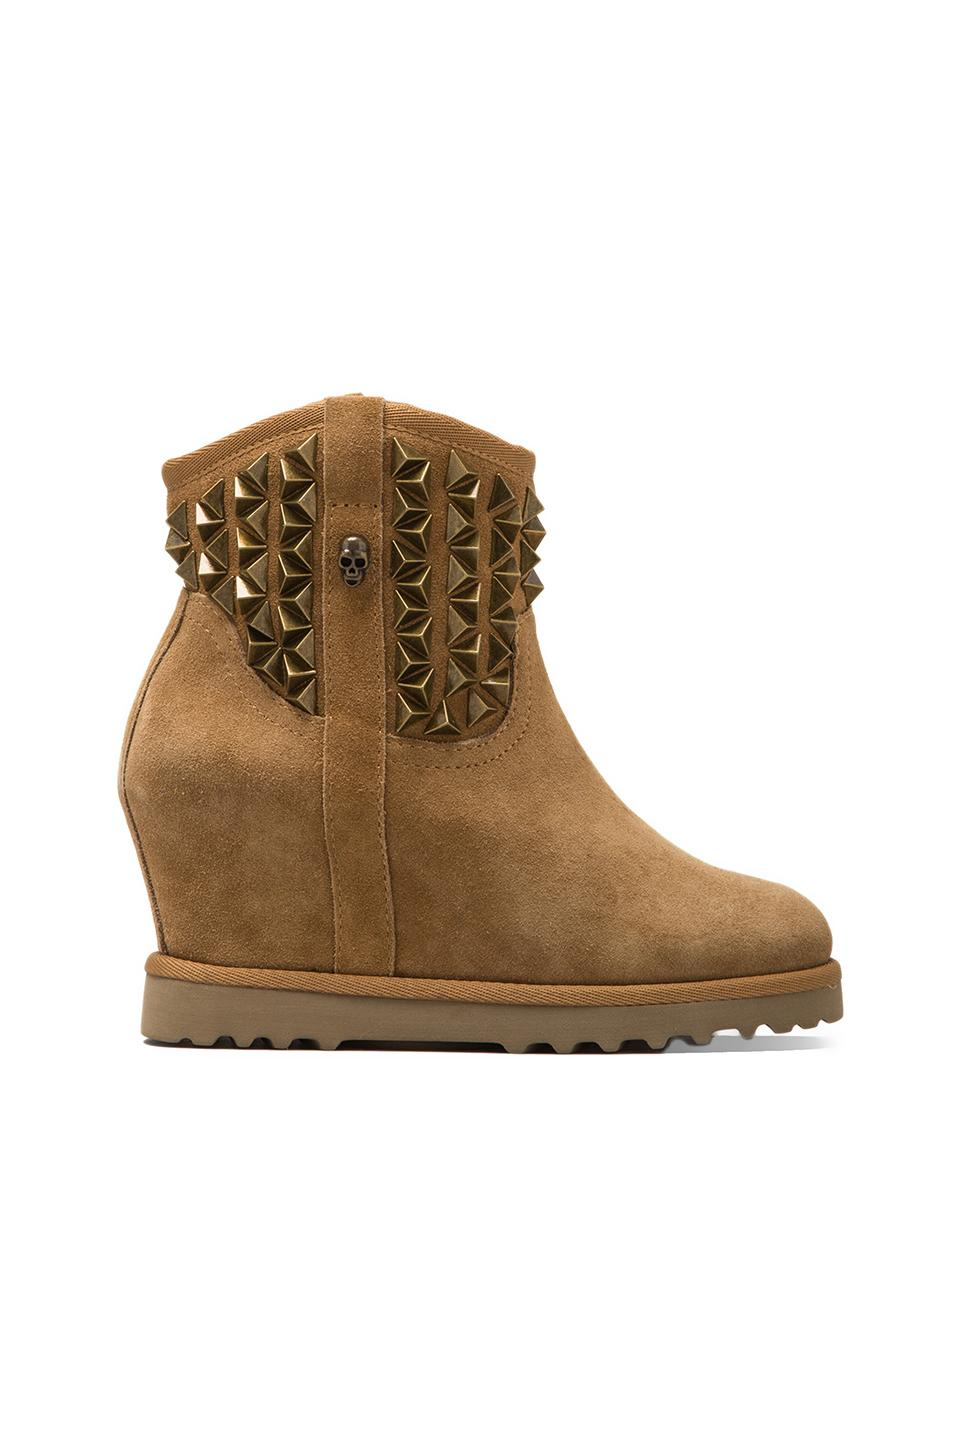 Ash Yoko Bootie in Light Camel